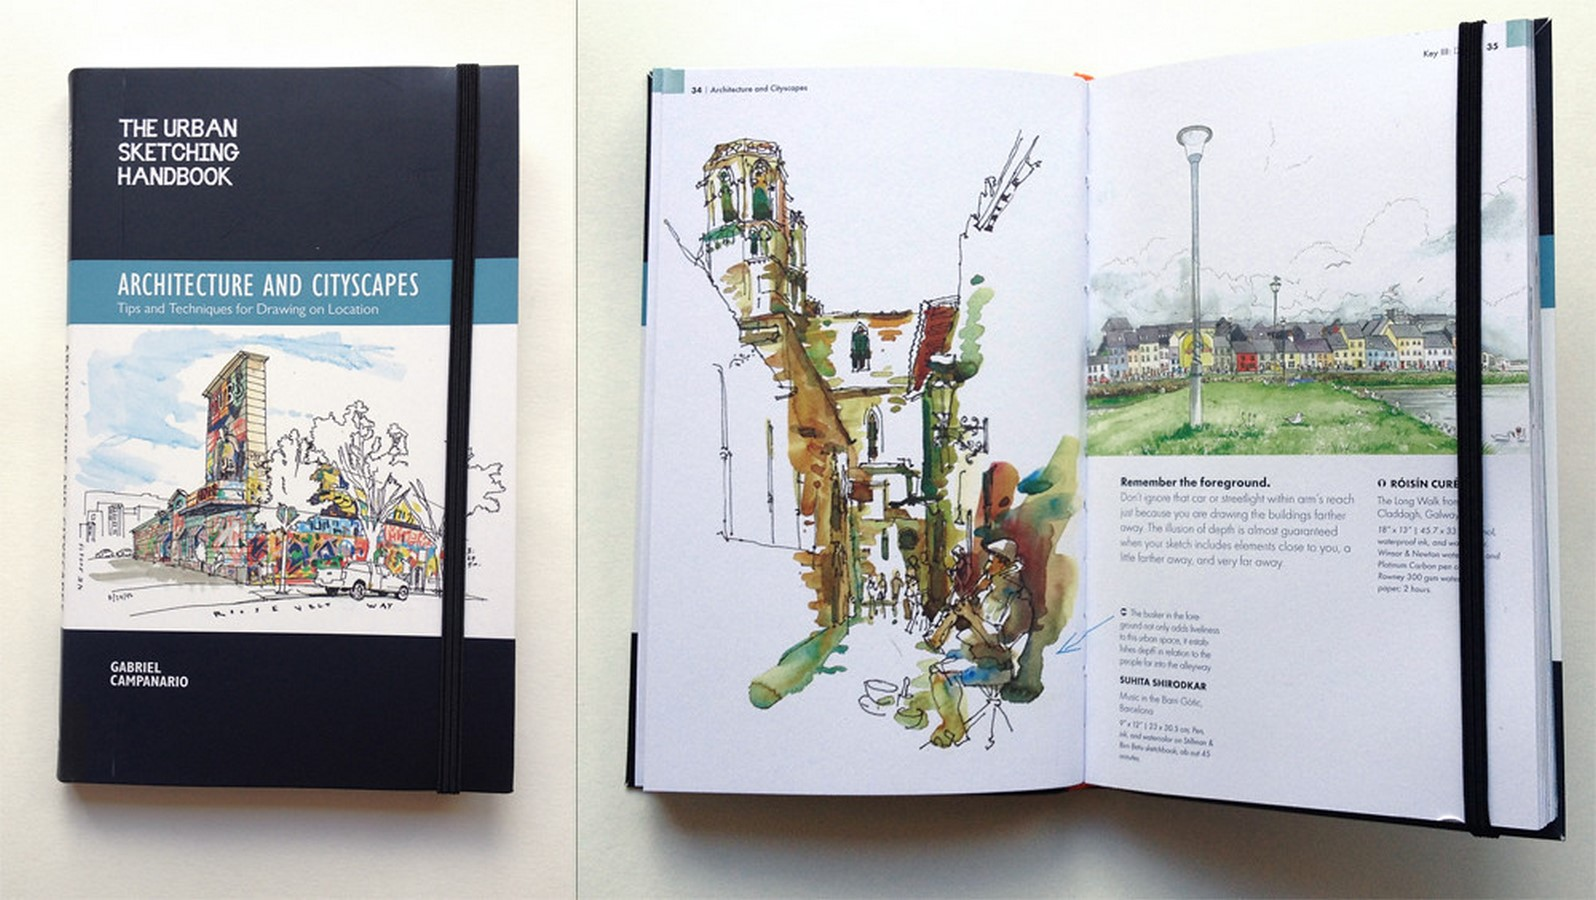 10 Books related to Architectural Sketching everyone should read - Sheet6